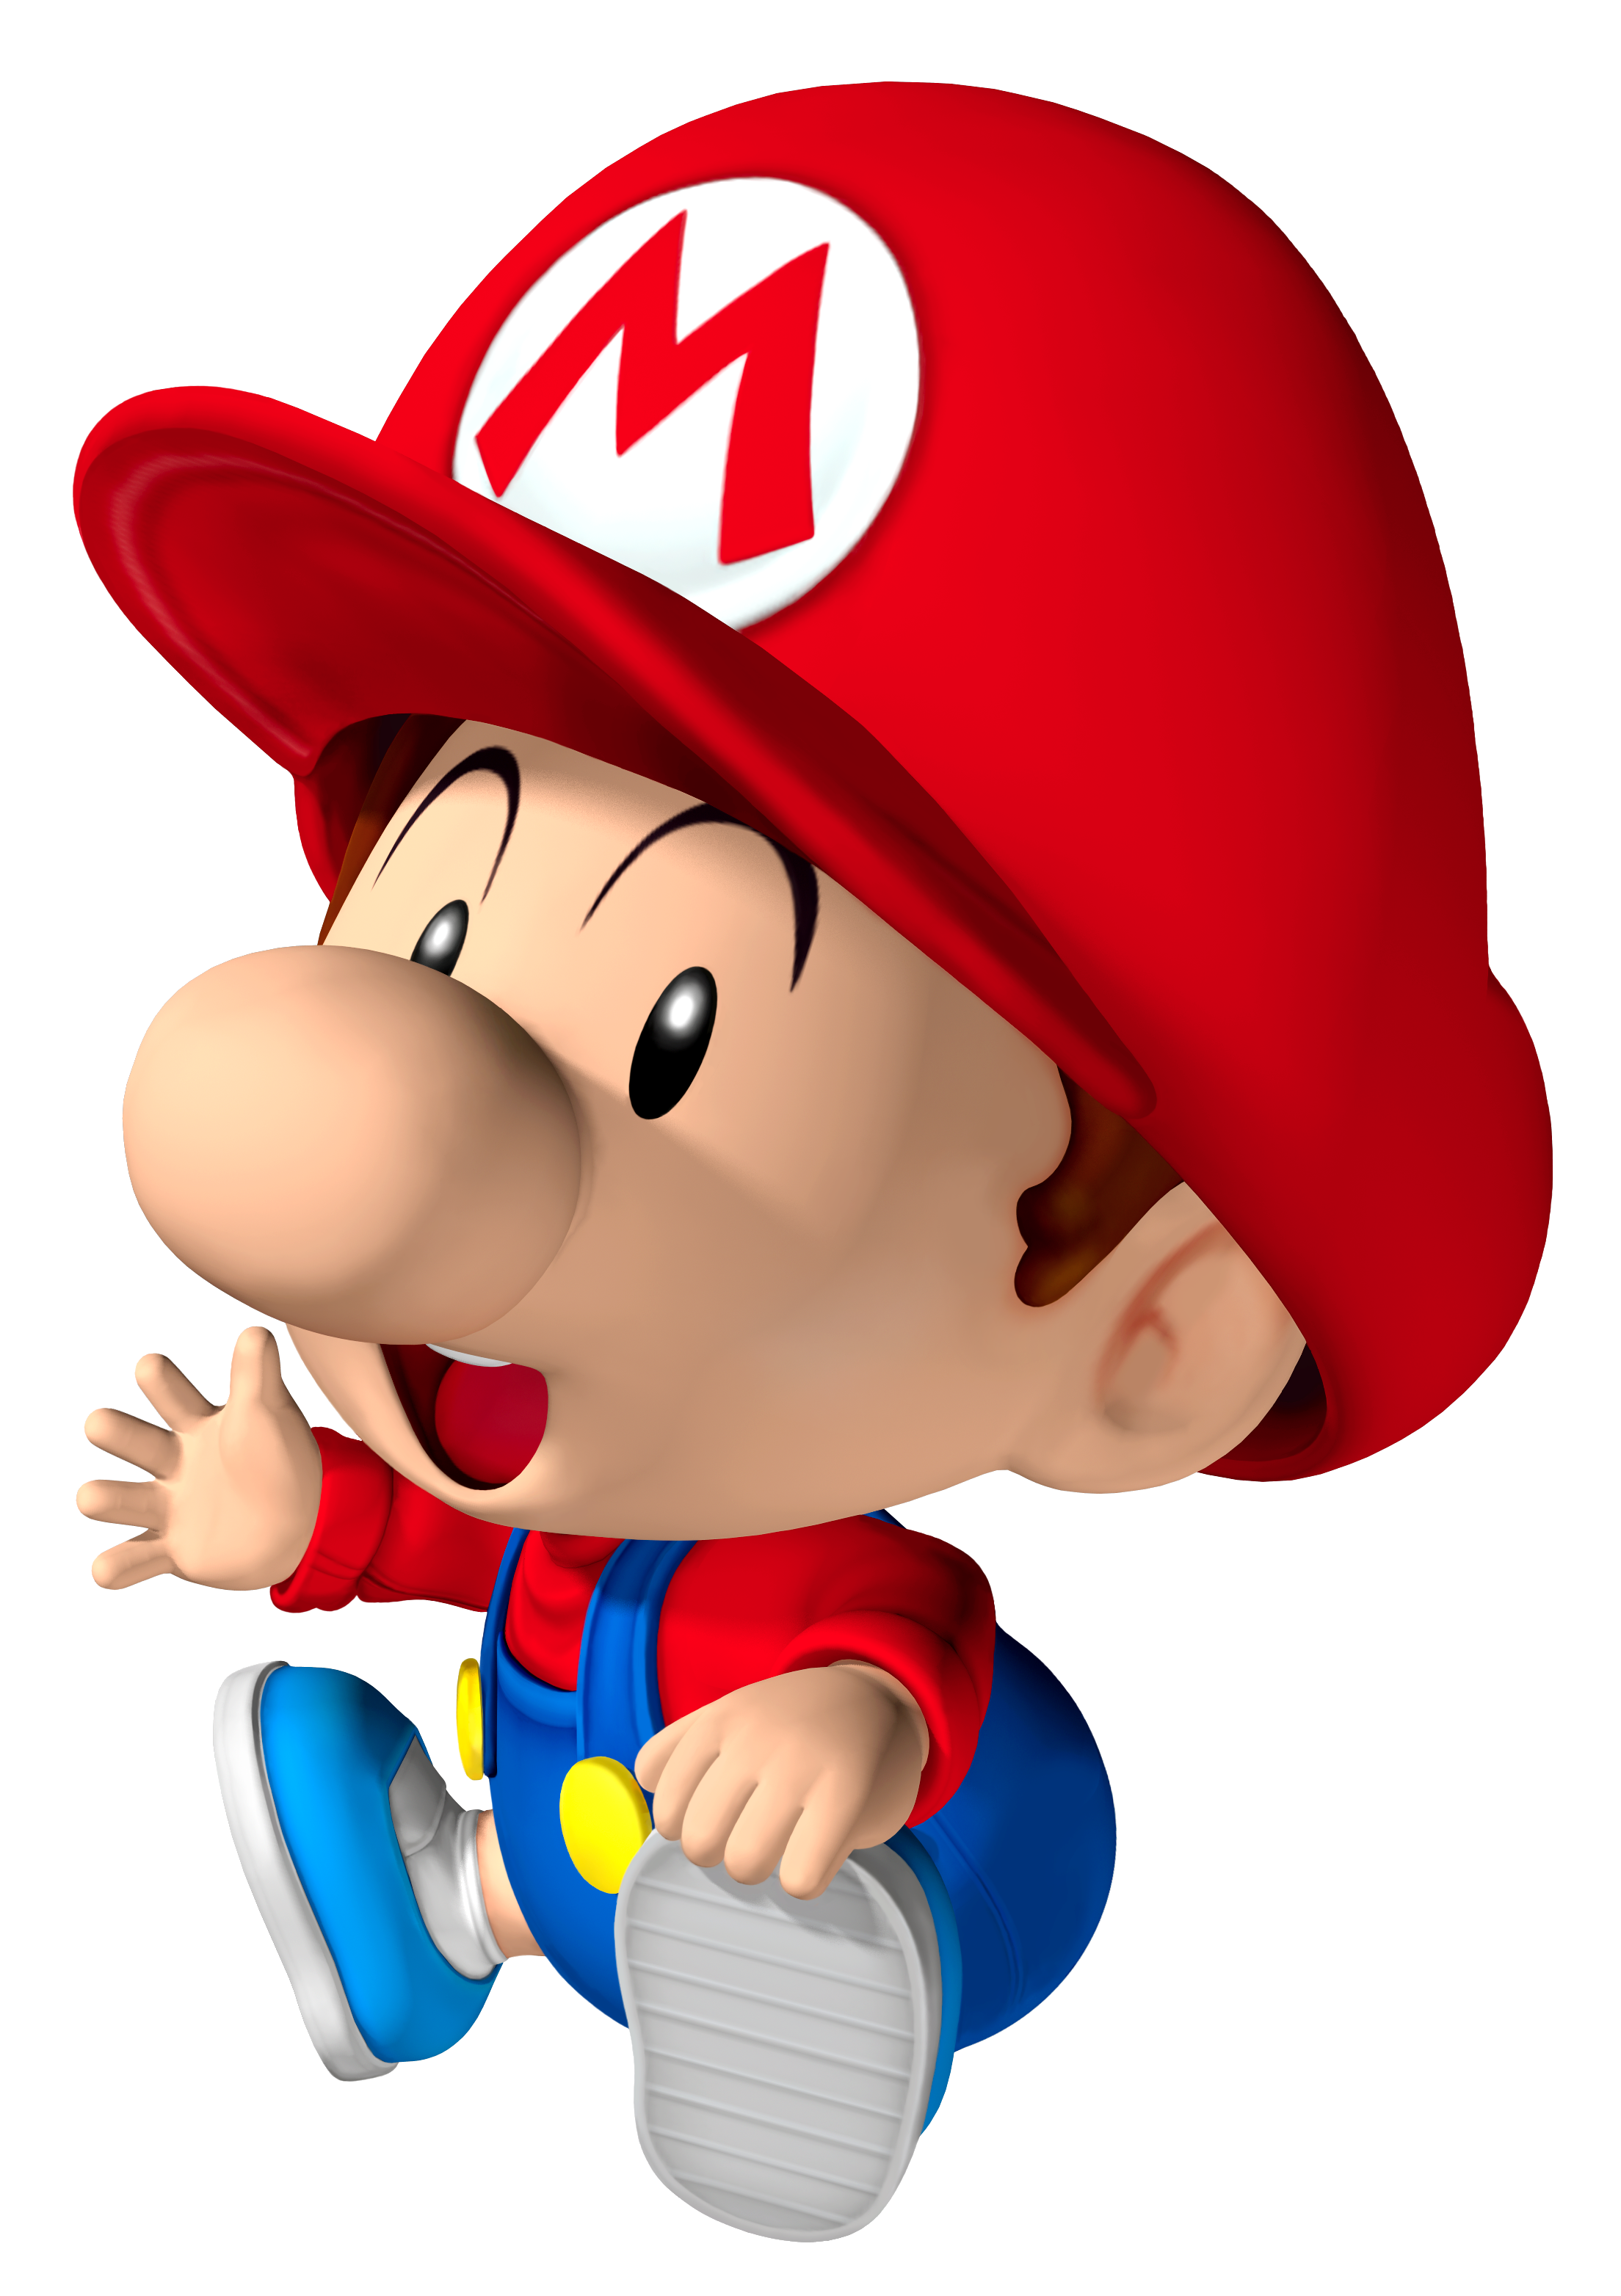 Download this high resolution Mario PNG Image Without Background